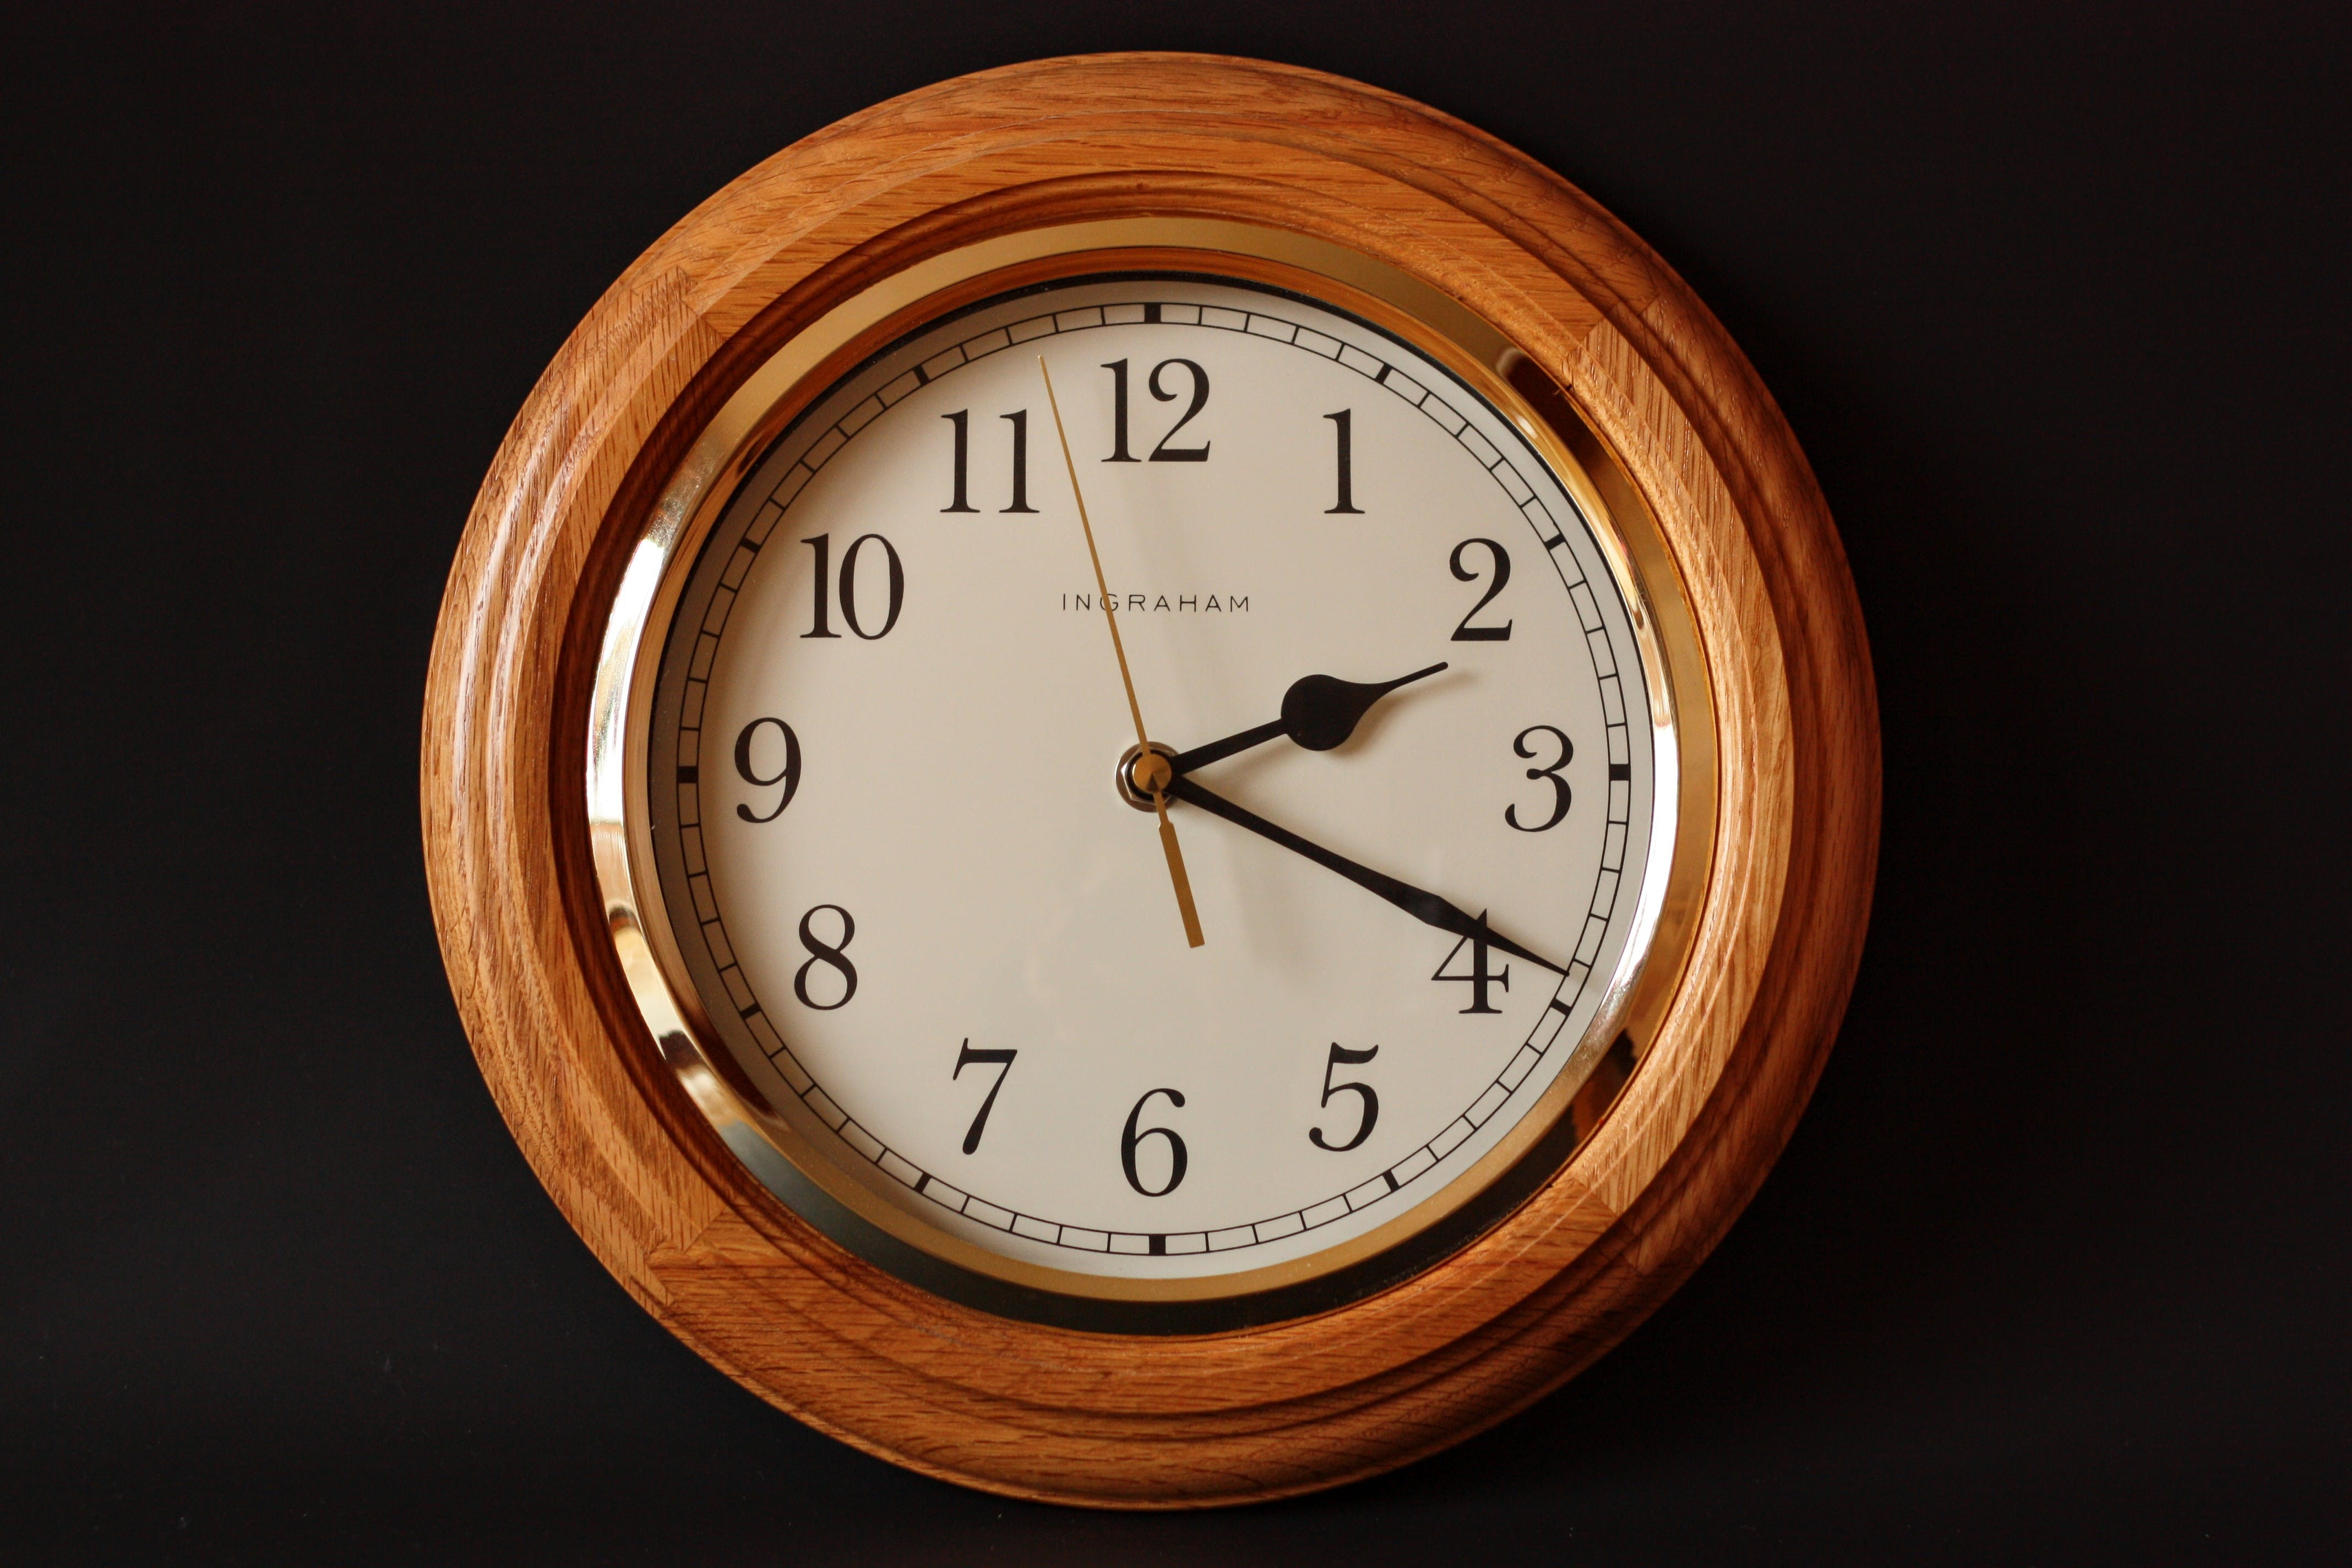 Brown Wooden Framed Clock Showing 2:19